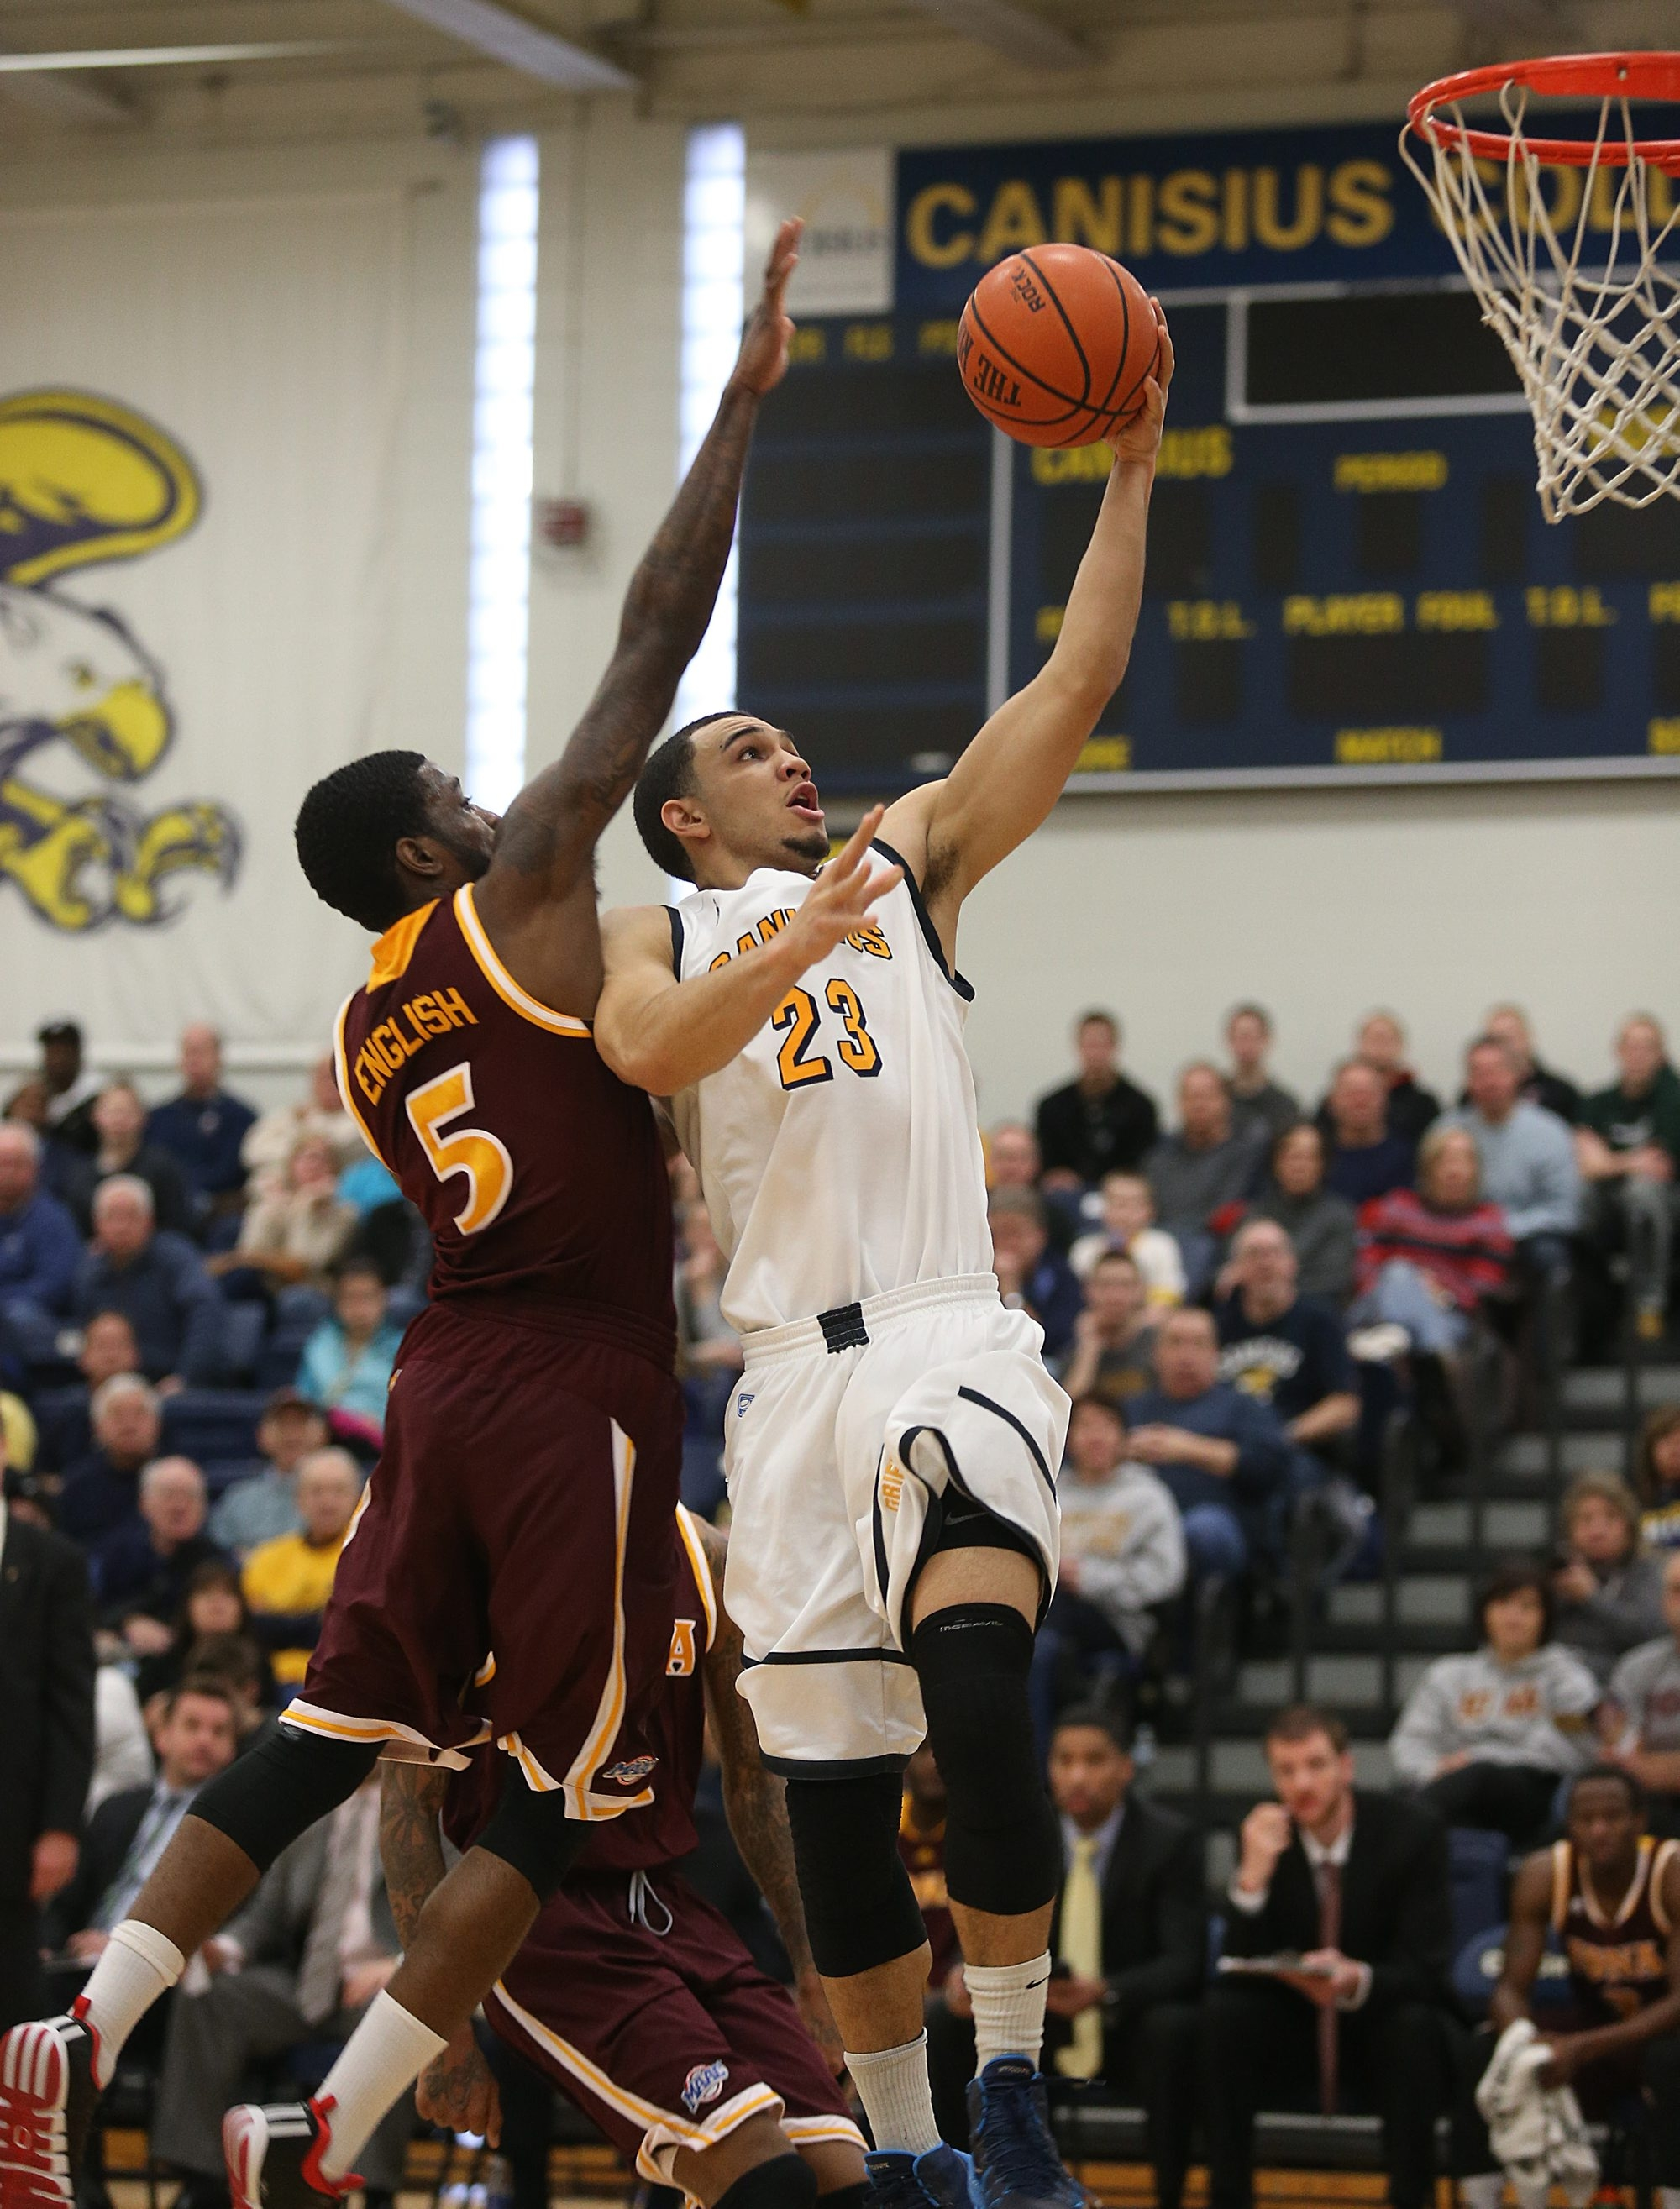 Canisius' Chris Perez, goes up for a shot as Iona's A.J. English defends during Sunday's game at the Koessler Athletic Center. Perez scored 24 points in a losing cause. English had a career-high 32 points.